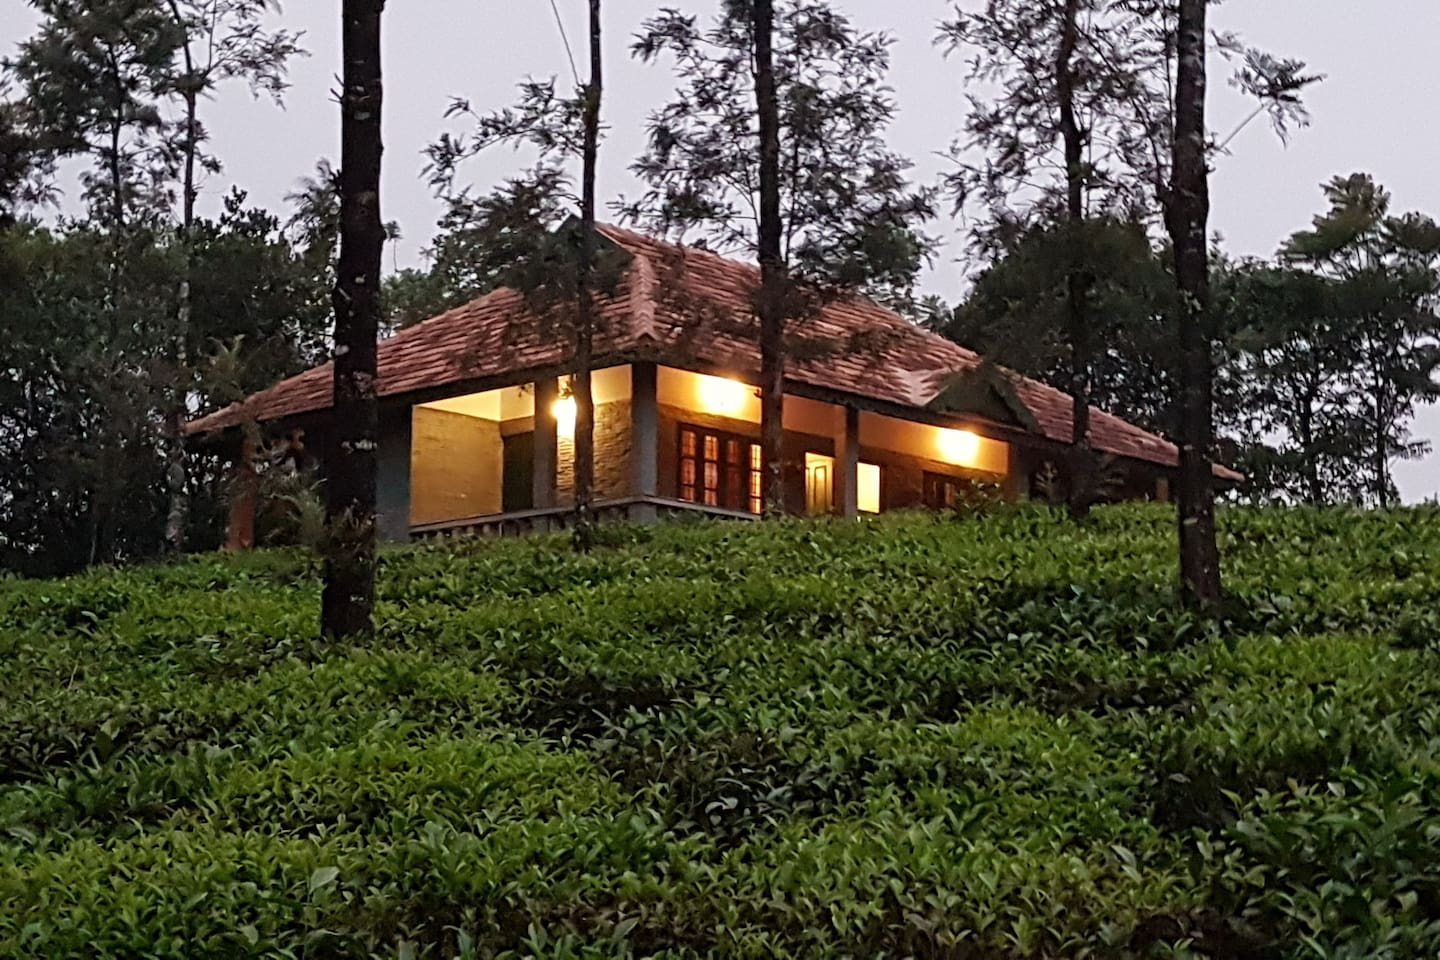 Nestled on a hillock called Kompan Nirappu is Abode, a cottage by the tea garden where mist plays hide & seek. The whistling wind and the chirping forest birds sing the tunes of your heart. Come for a sojourn .........